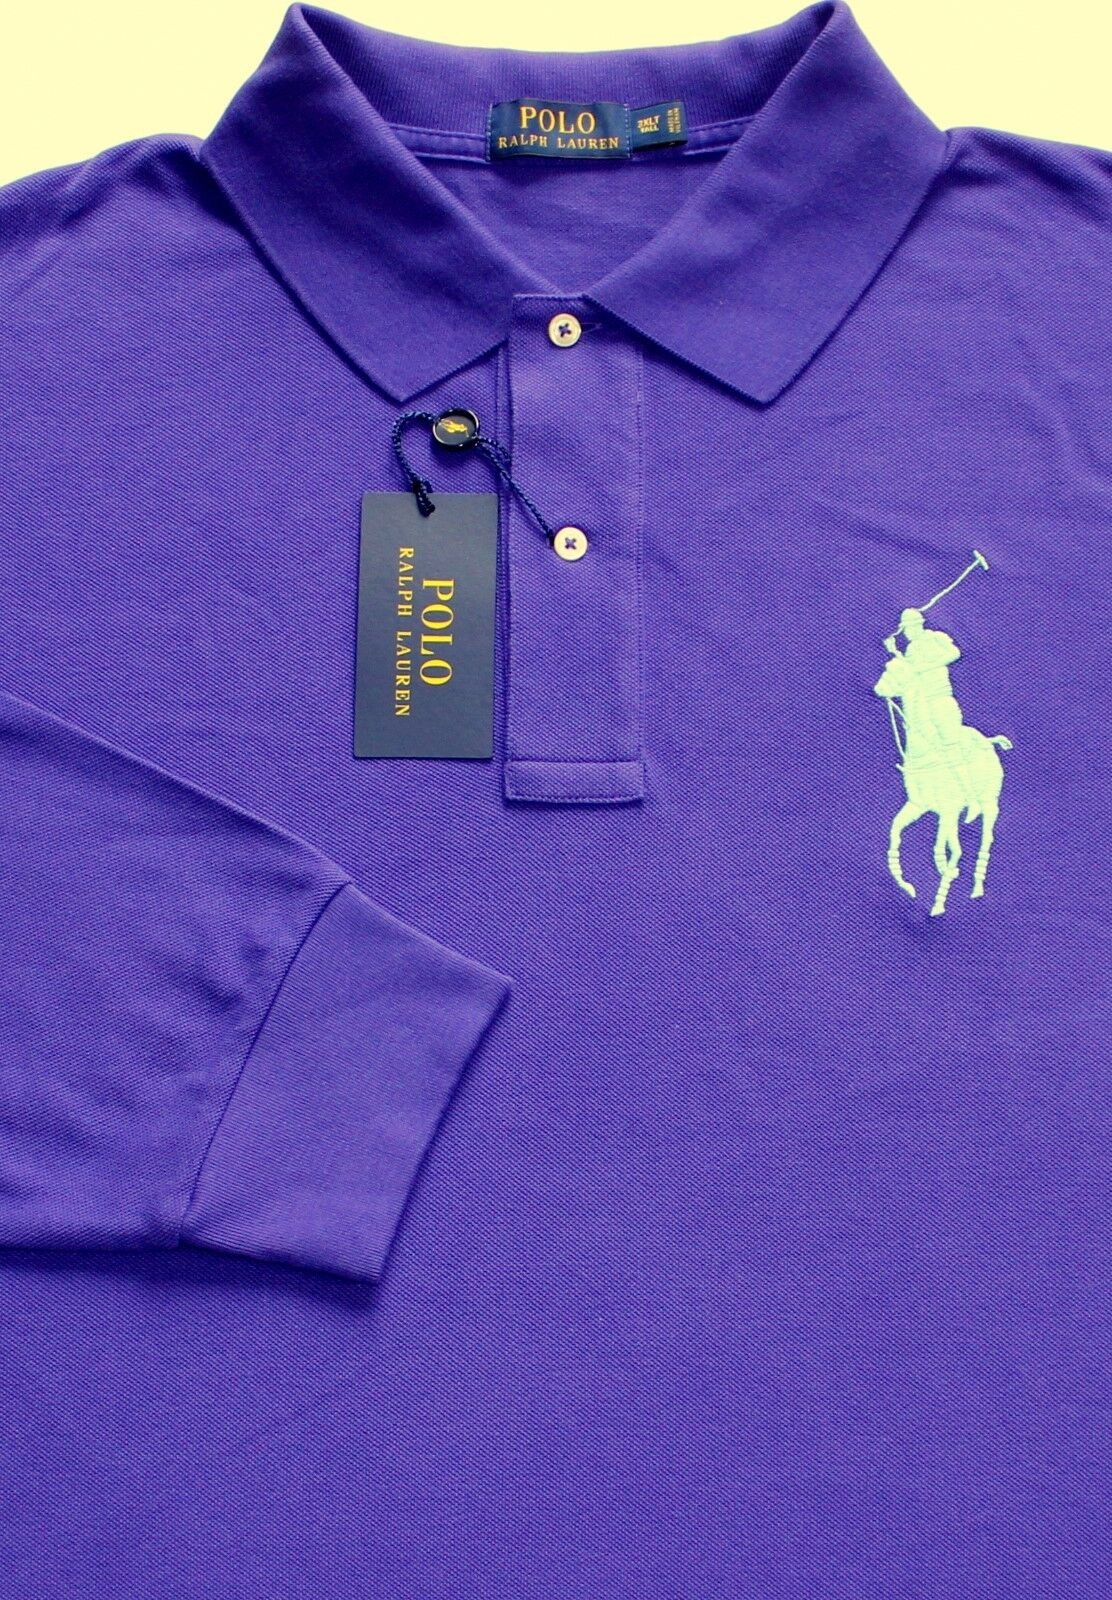 New Polo Ralph Lauren Long Sleeve Racing Purple Big Pony Mesh Polo Shirt Big 3X